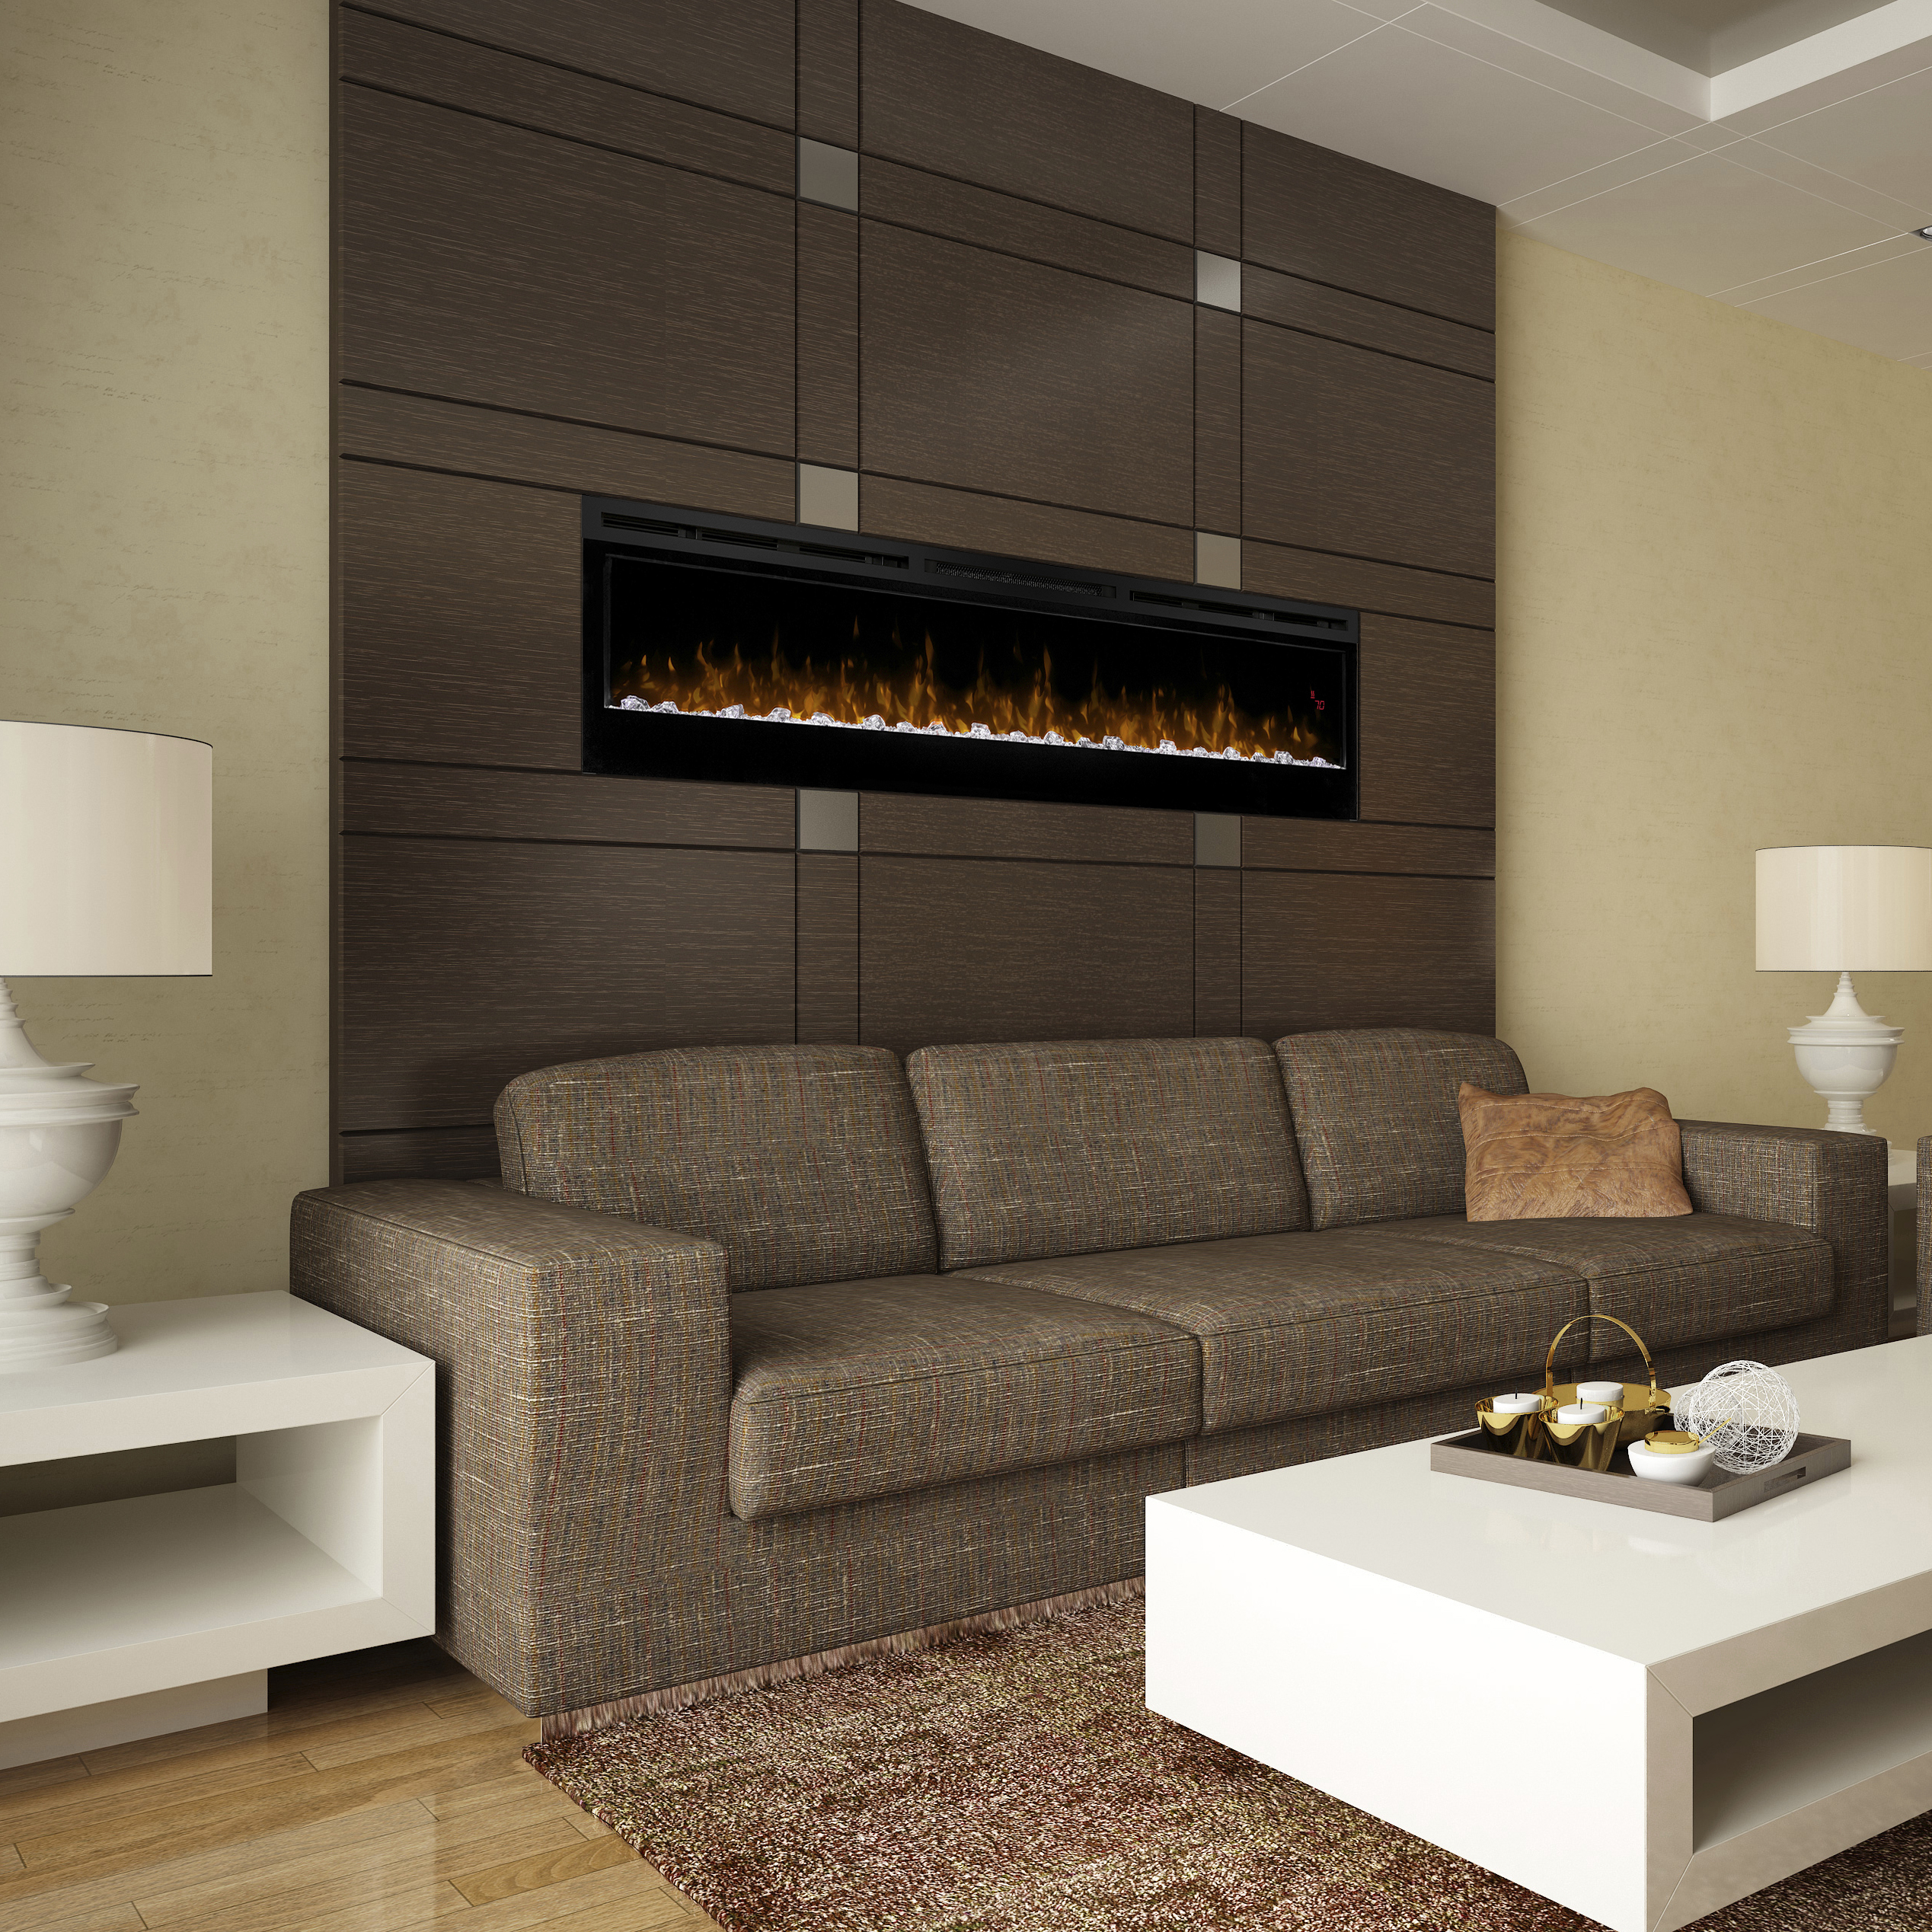 74 inch Prism Dimplex Wall Mounted Fireplaces in a Brown Themed Interior